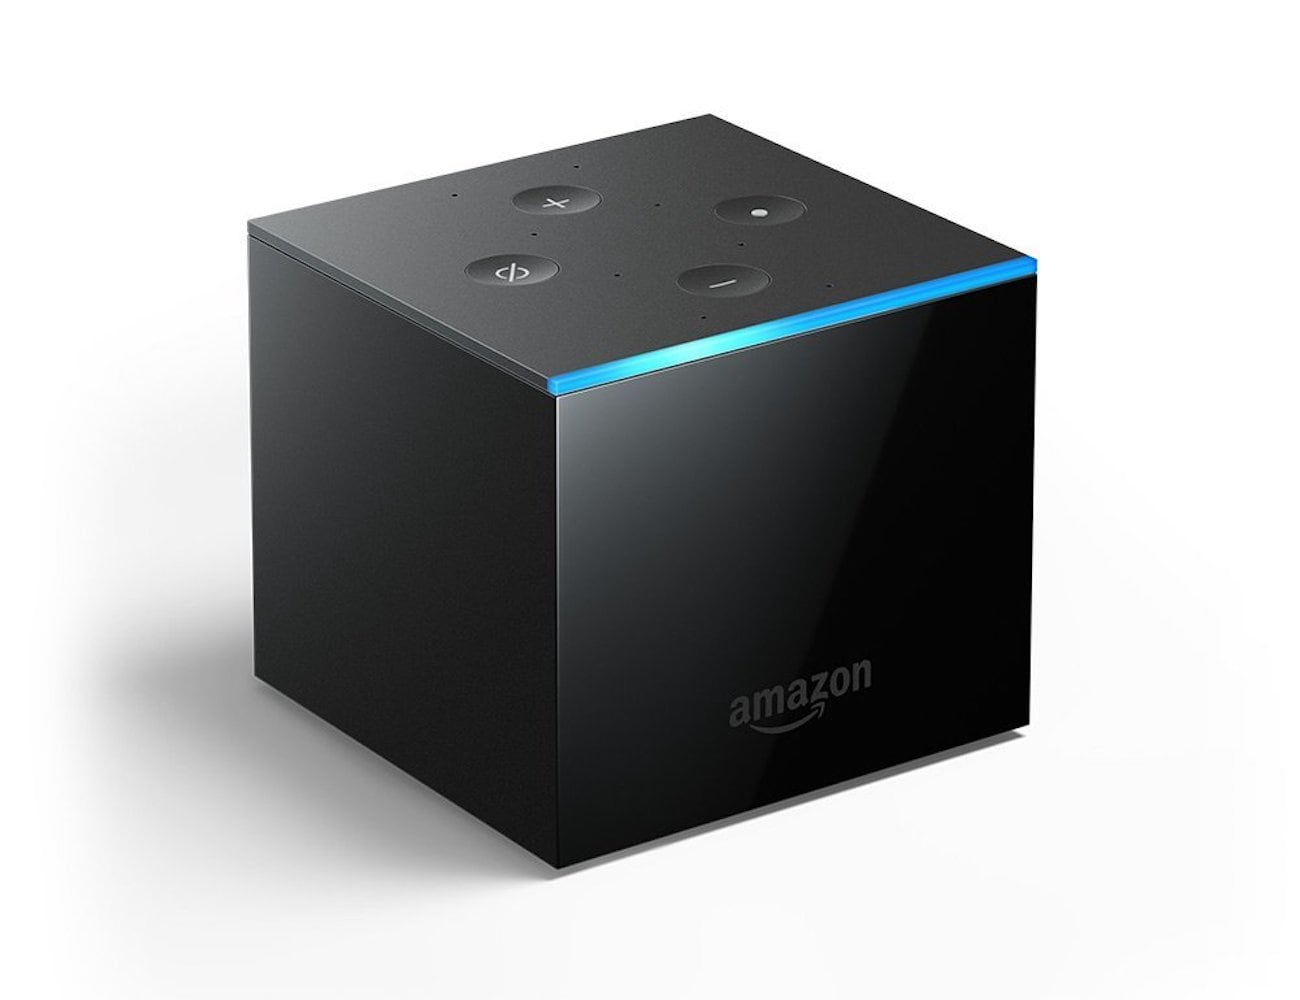 Amazon Fire TV Cube Alexa Streaming Box